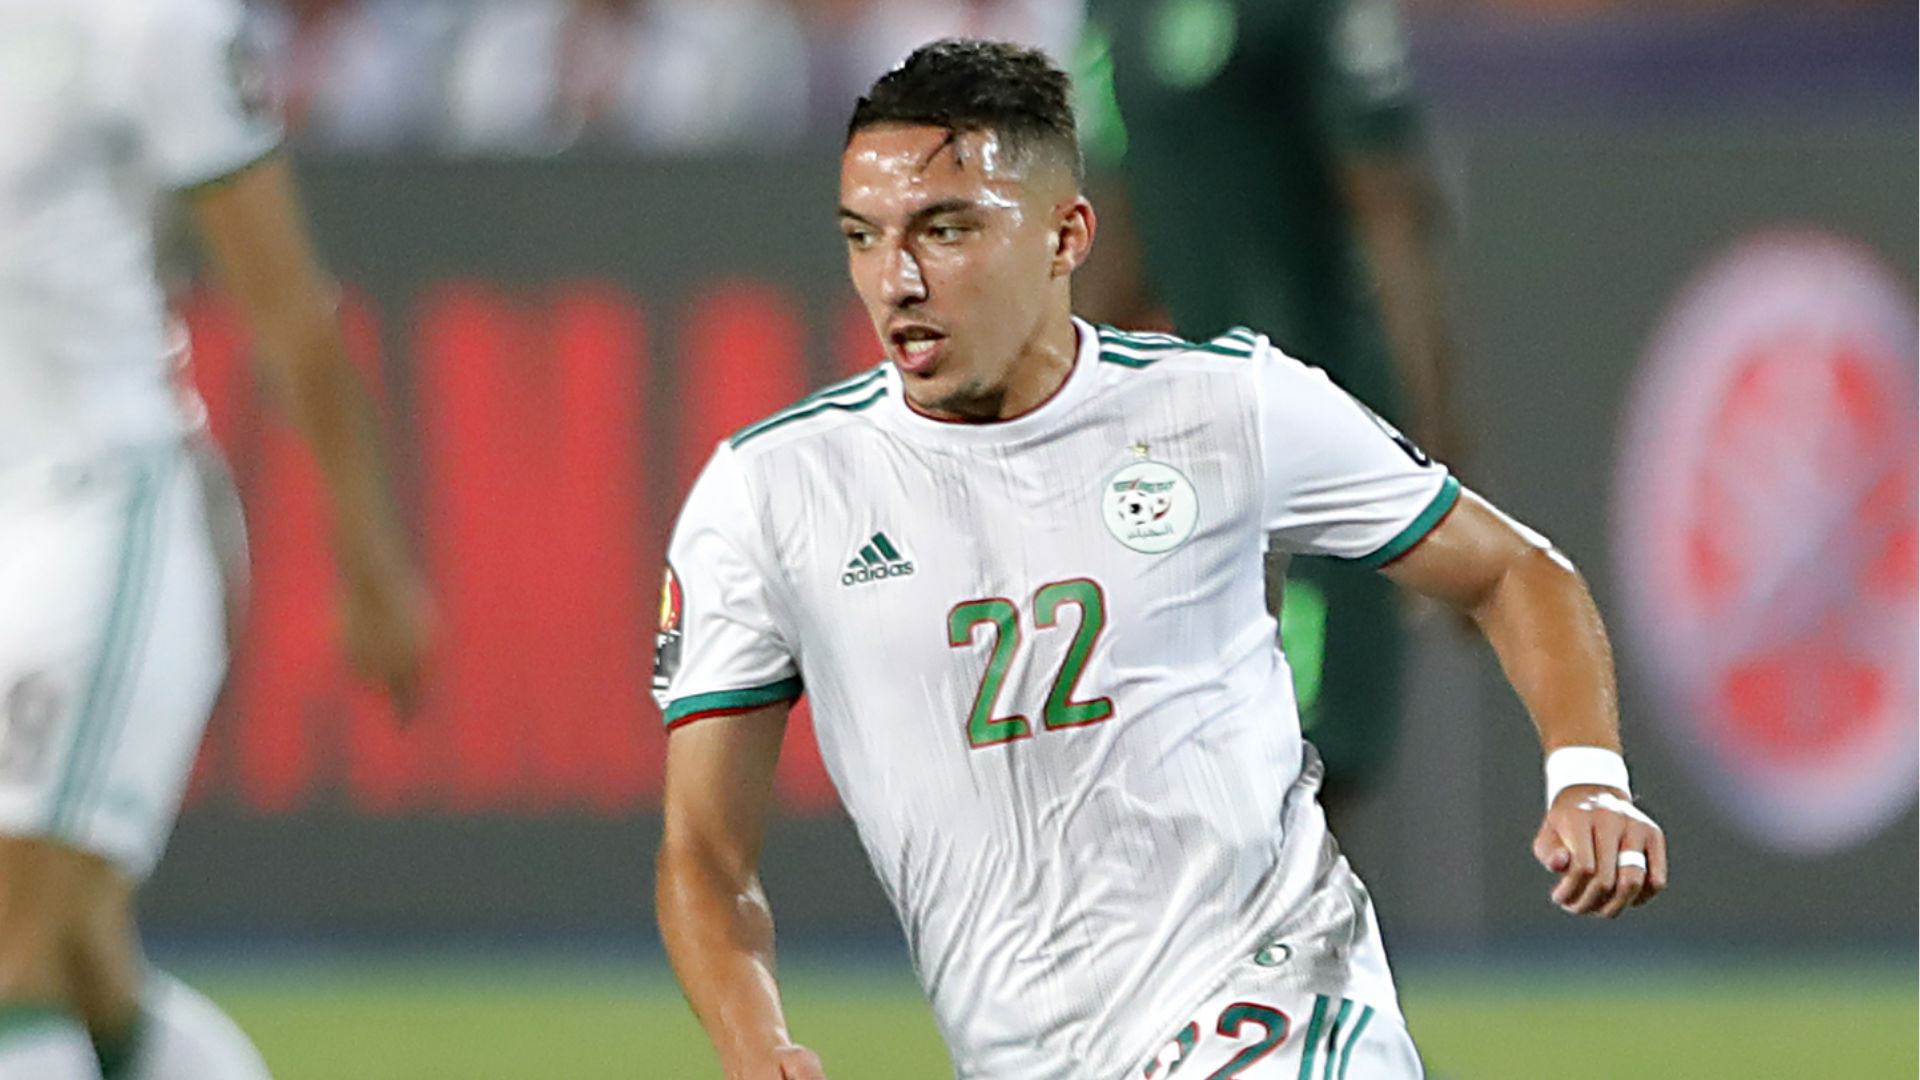 Ismael Bennacer won the AFCON 2019 with Algeria (Getty Images)